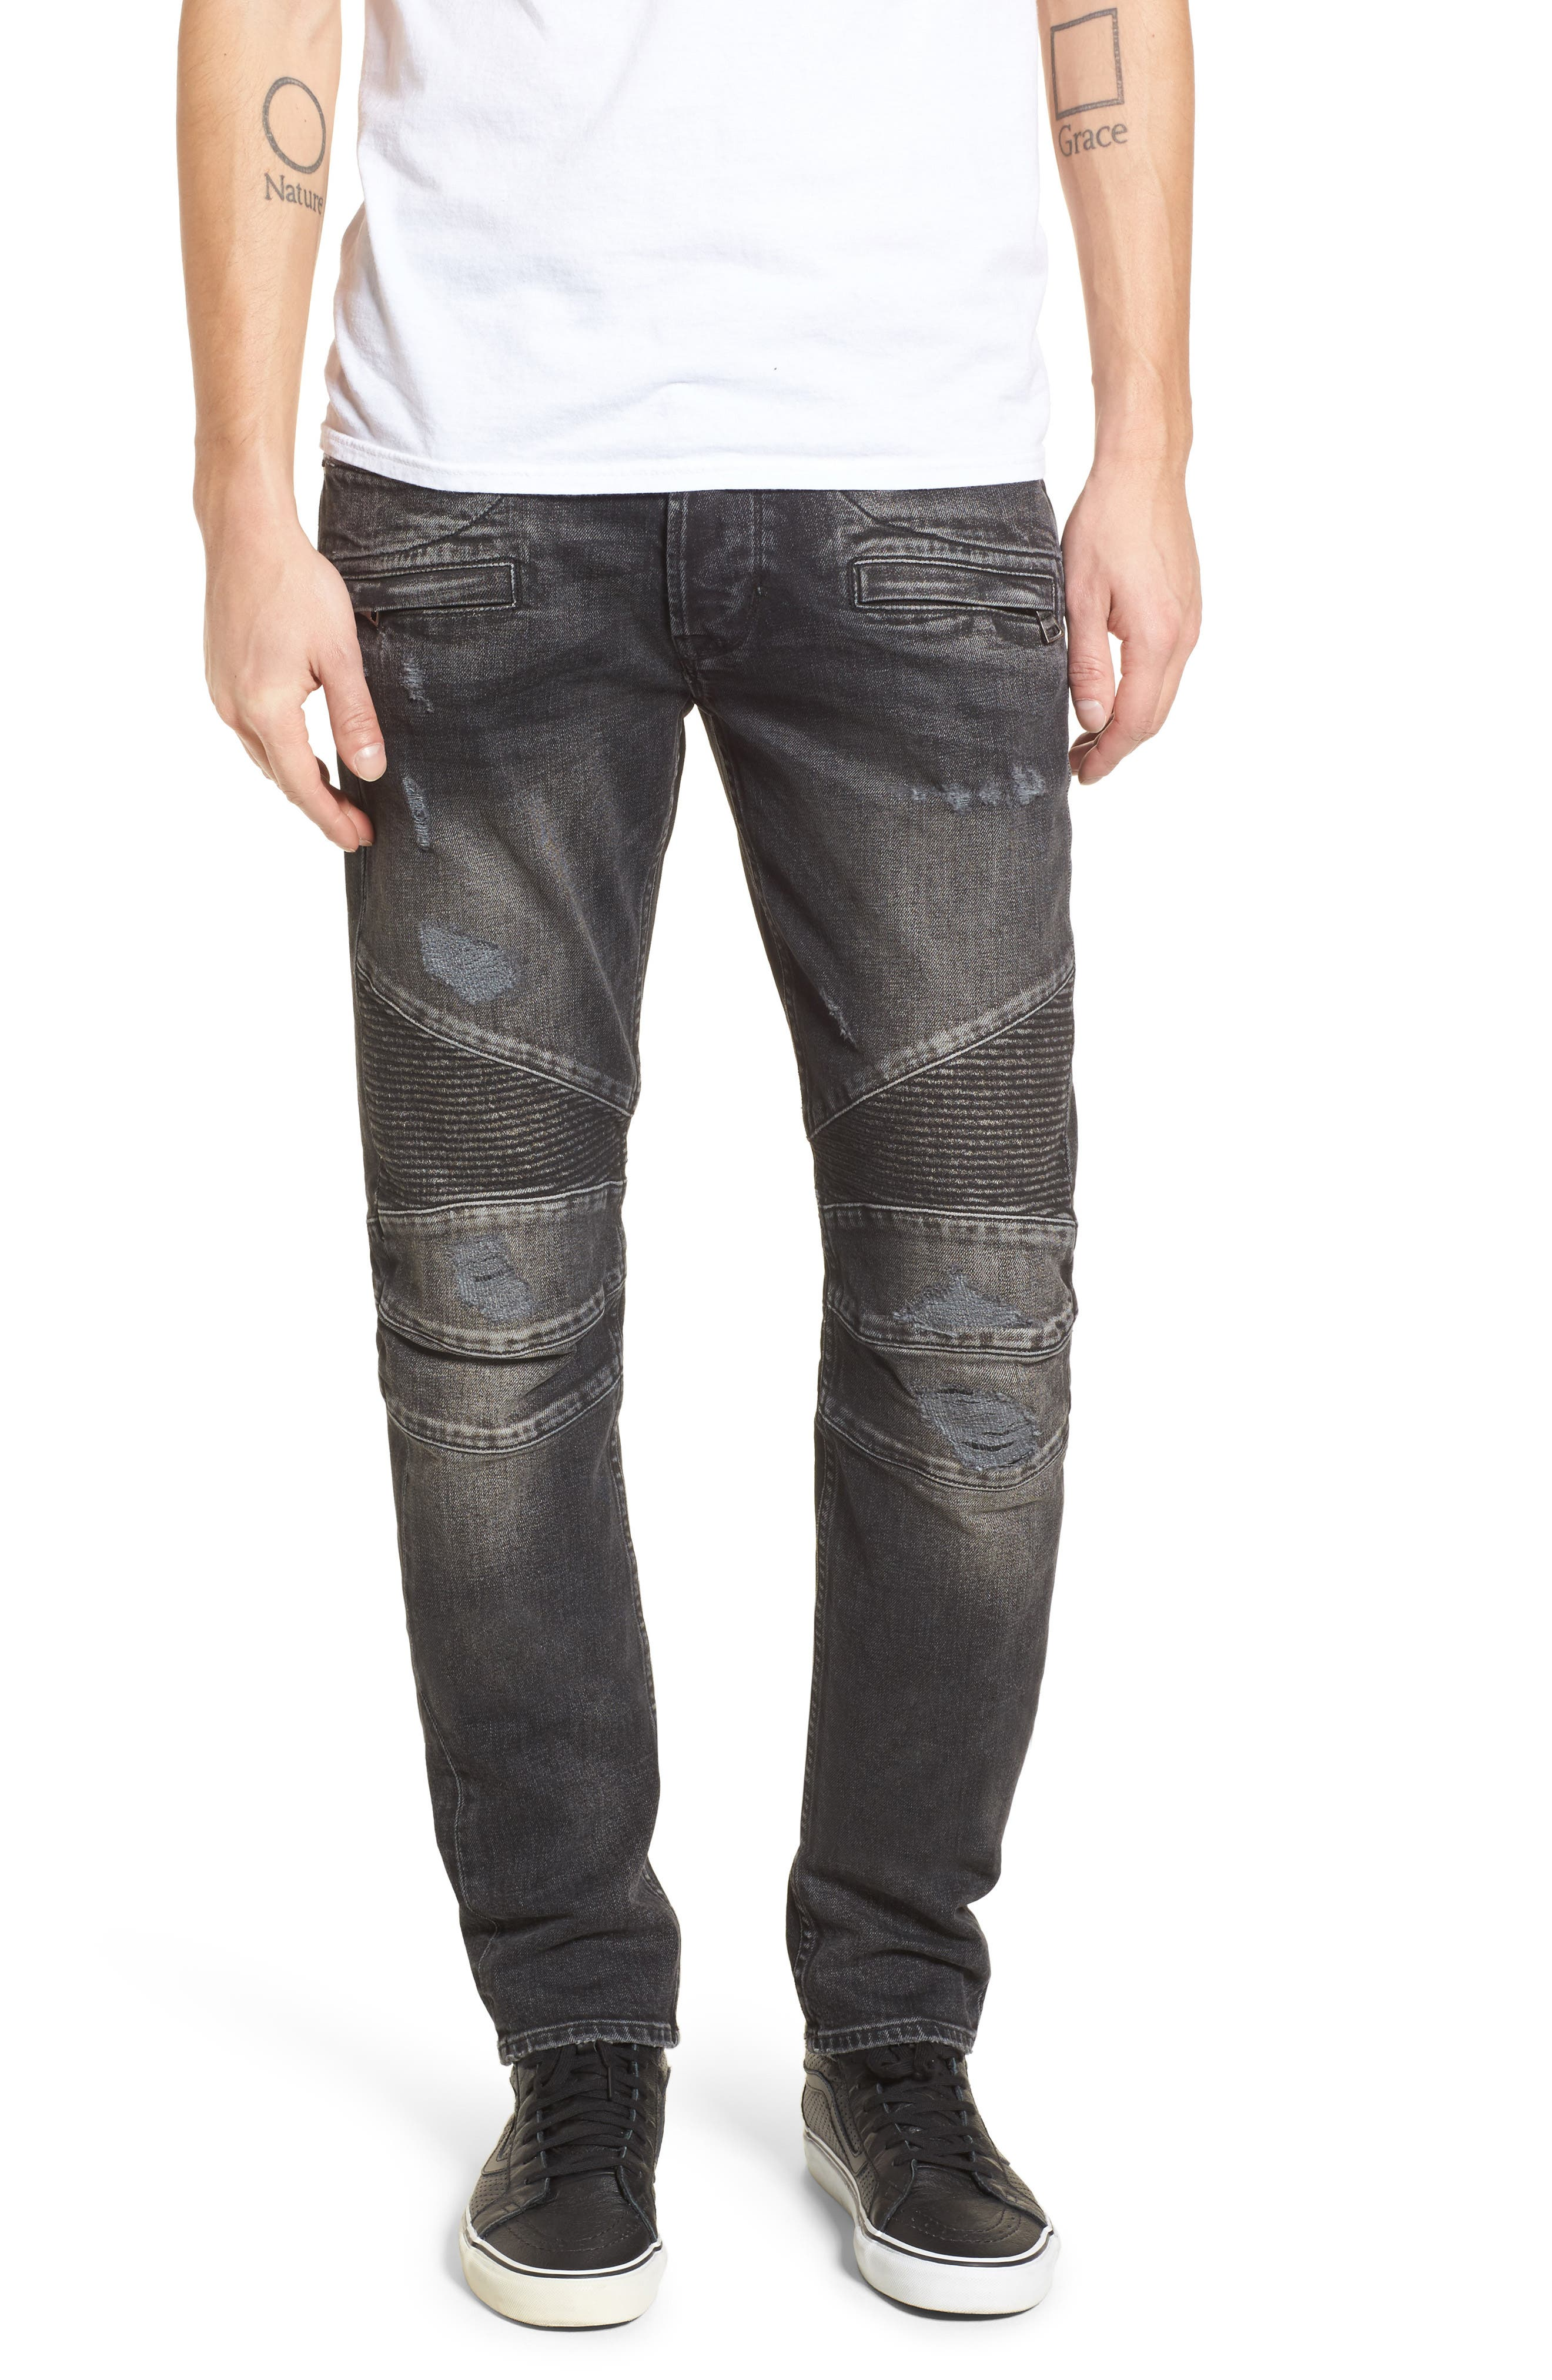 Blinder Biker Skinny Fit Jeans,                             Main thumbnail 1, color,                             HACKER